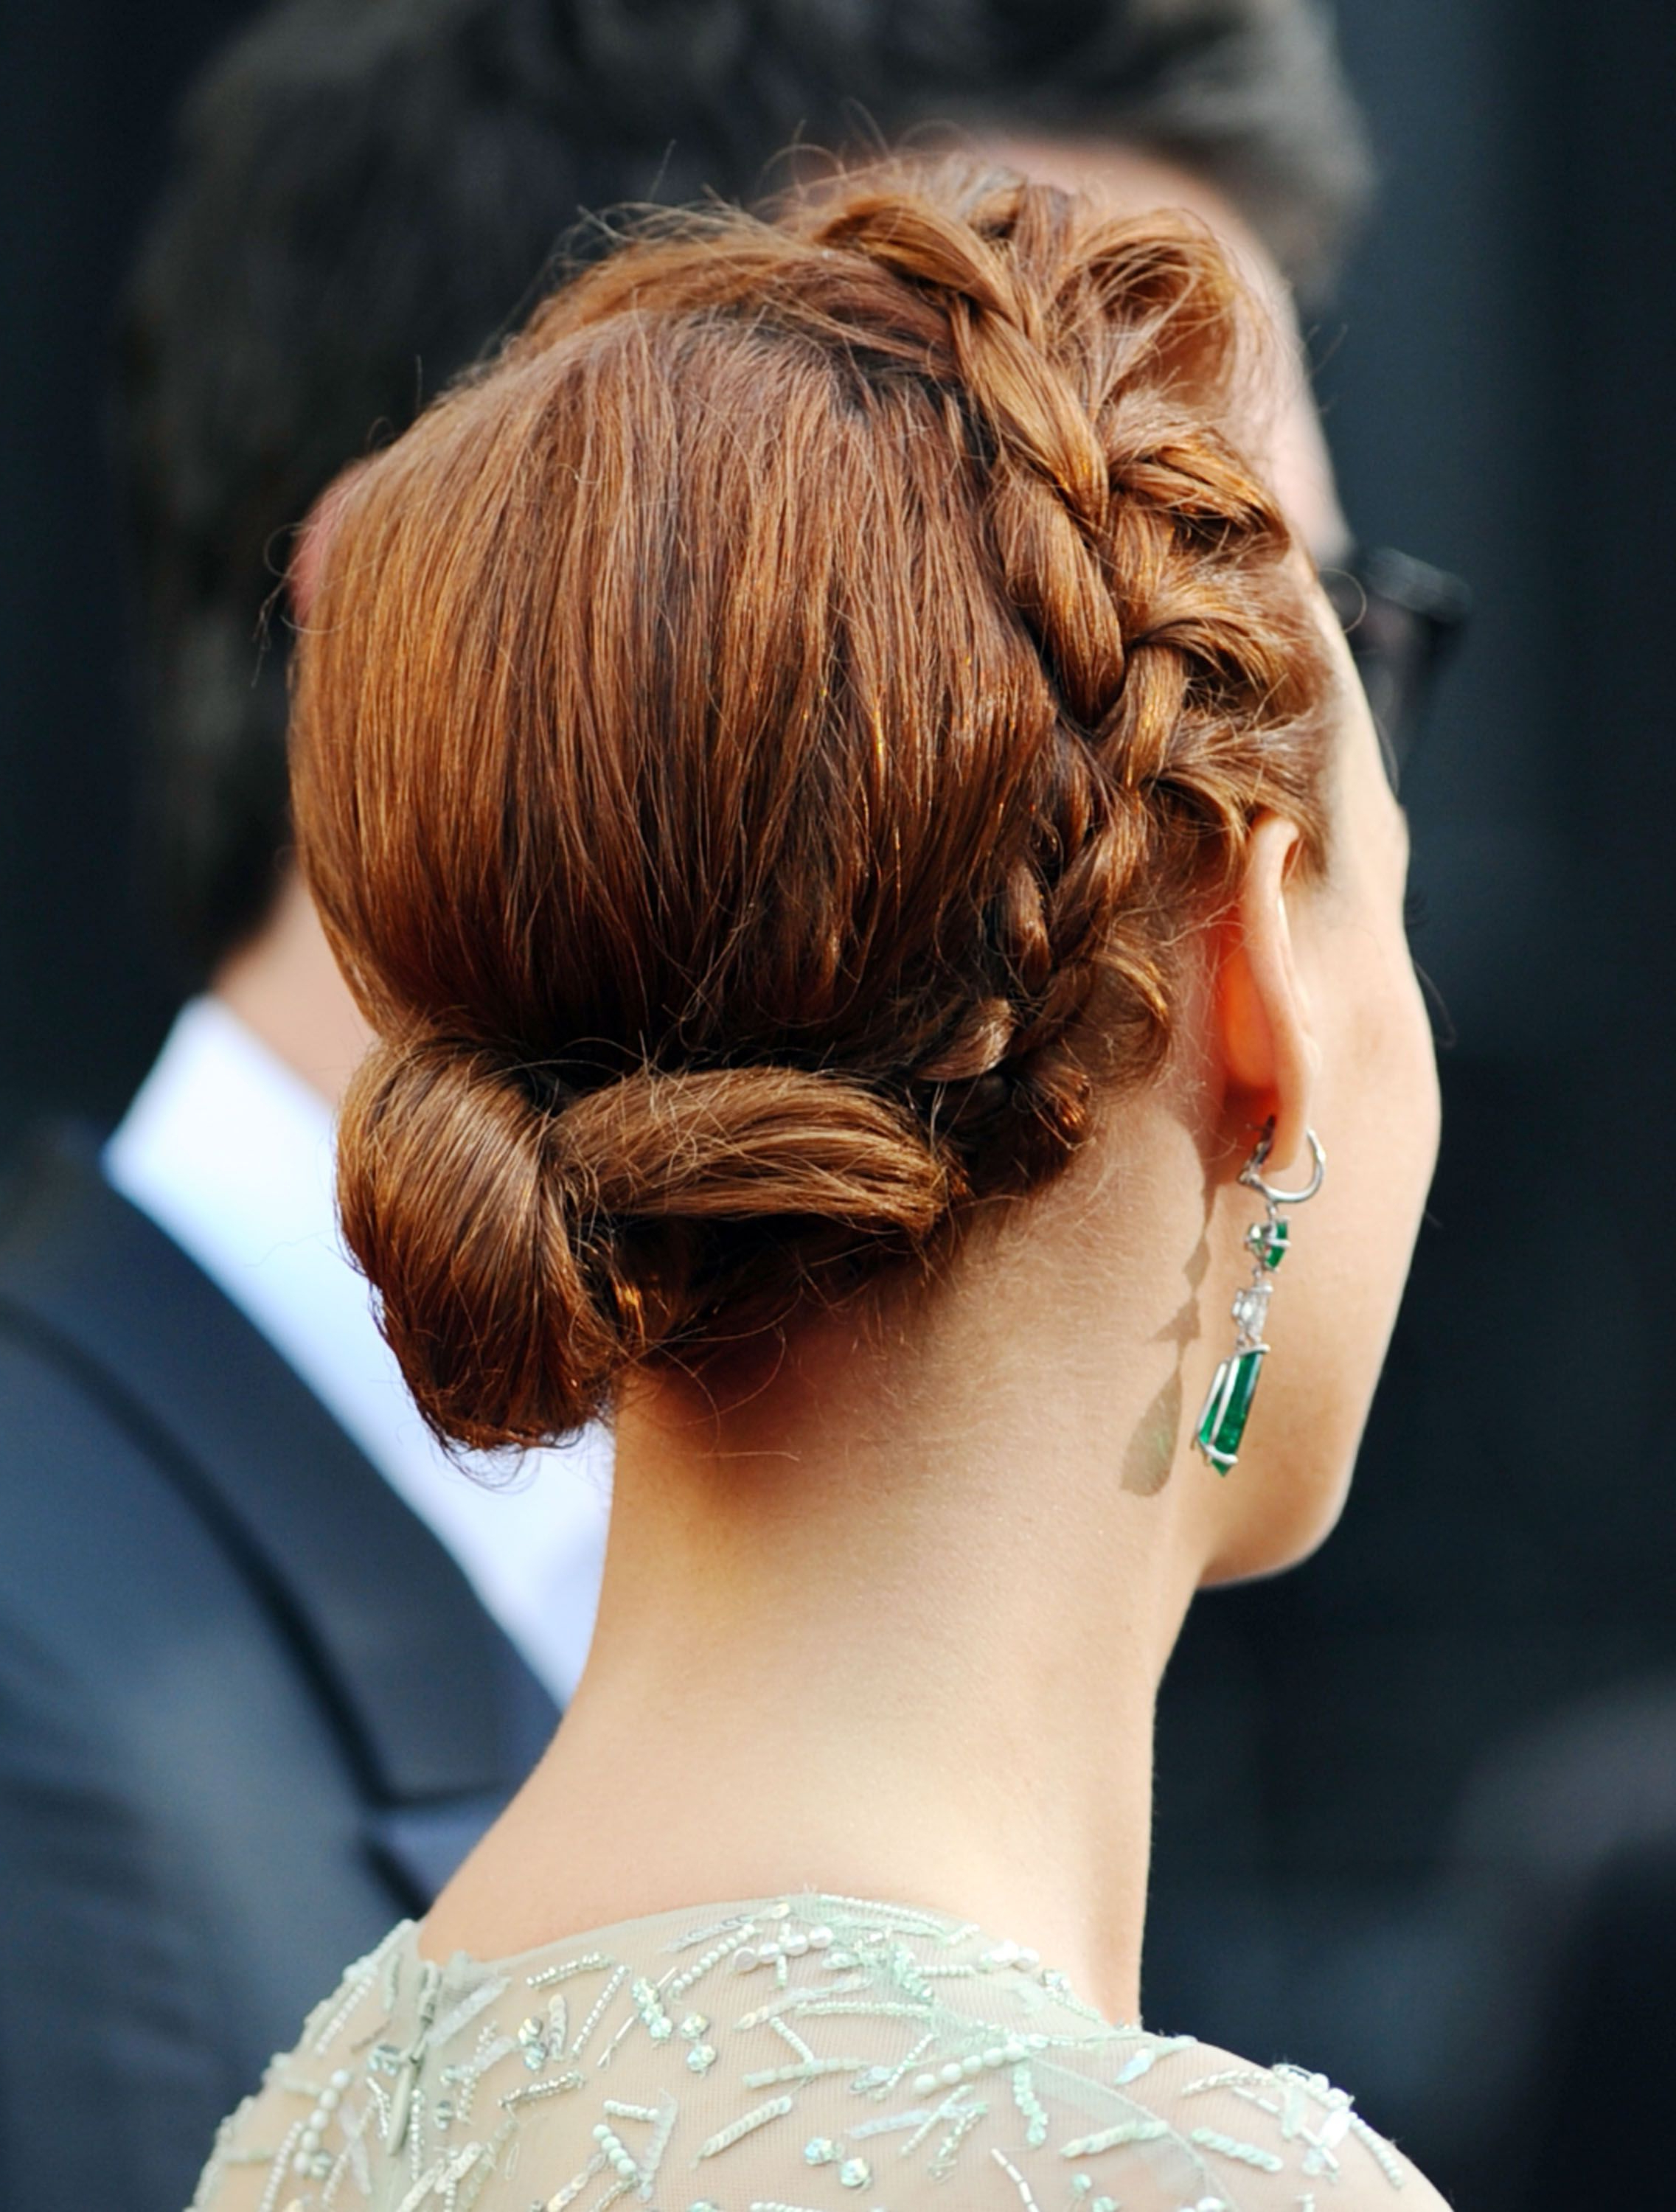 60 Easy Braided Hairstyles – Cool Braid How To's & Ideas Intended For Preferred Braided Underside Hairstyles (View 13 of 20)